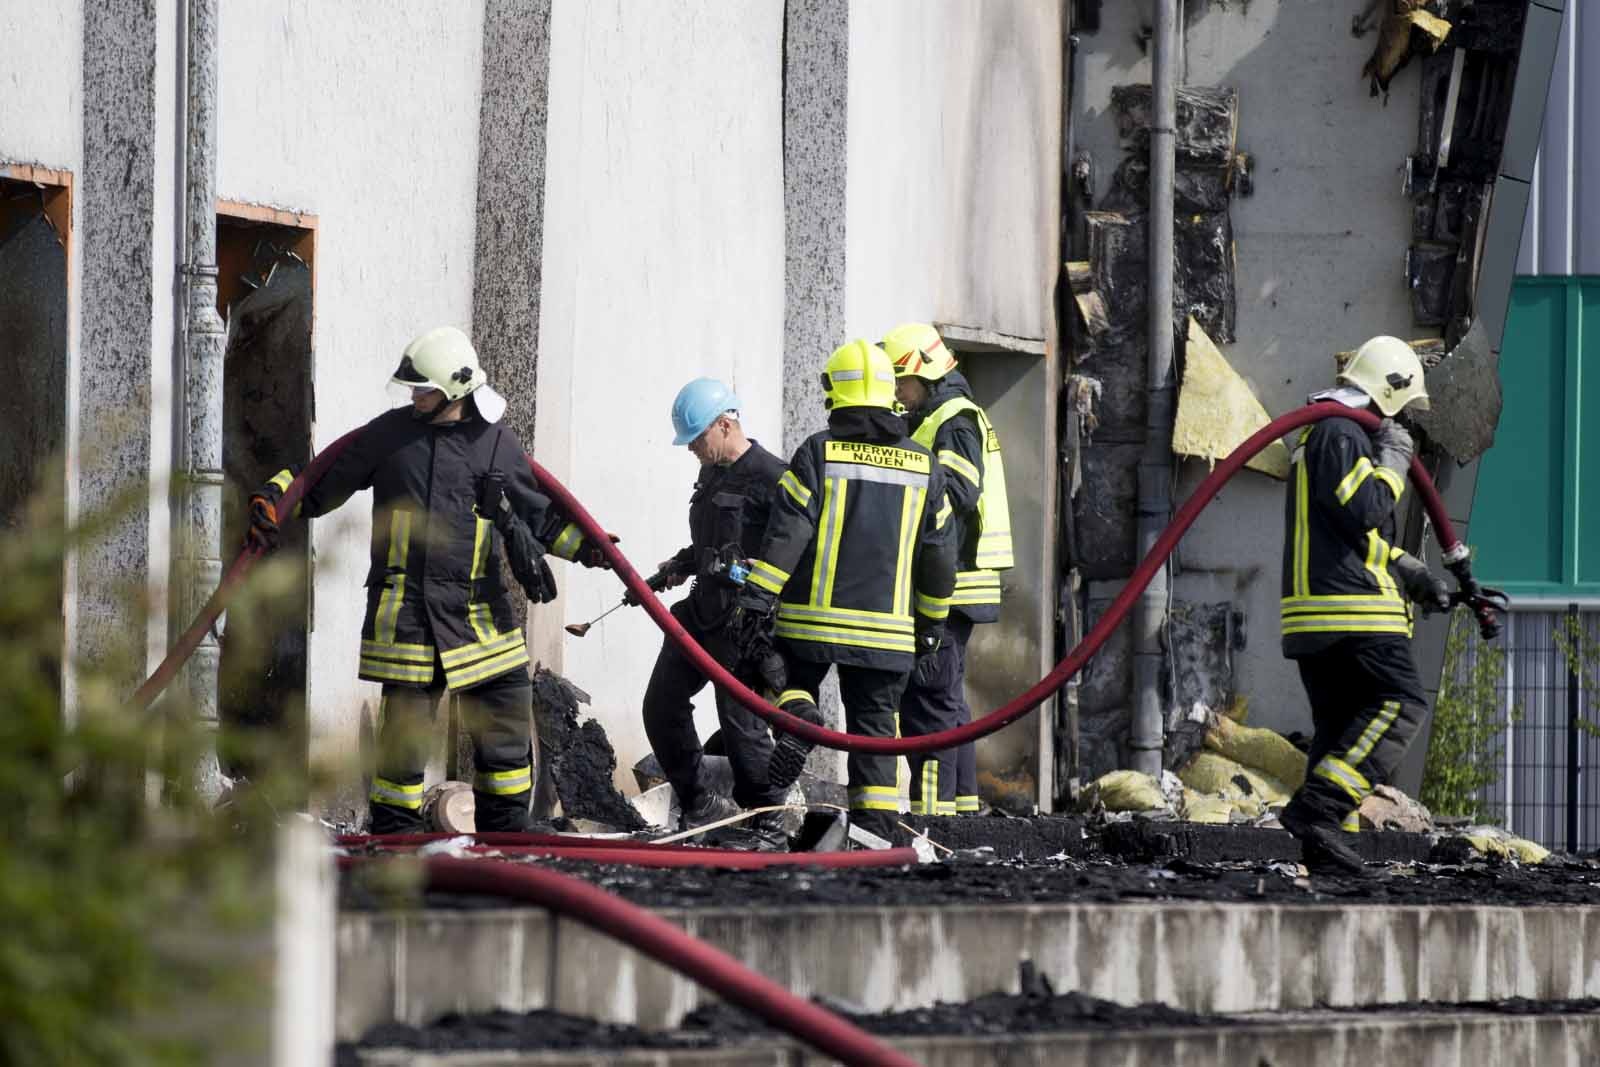 Fire in a refugee accomodation in the south west of Germany: Arson or blaze?